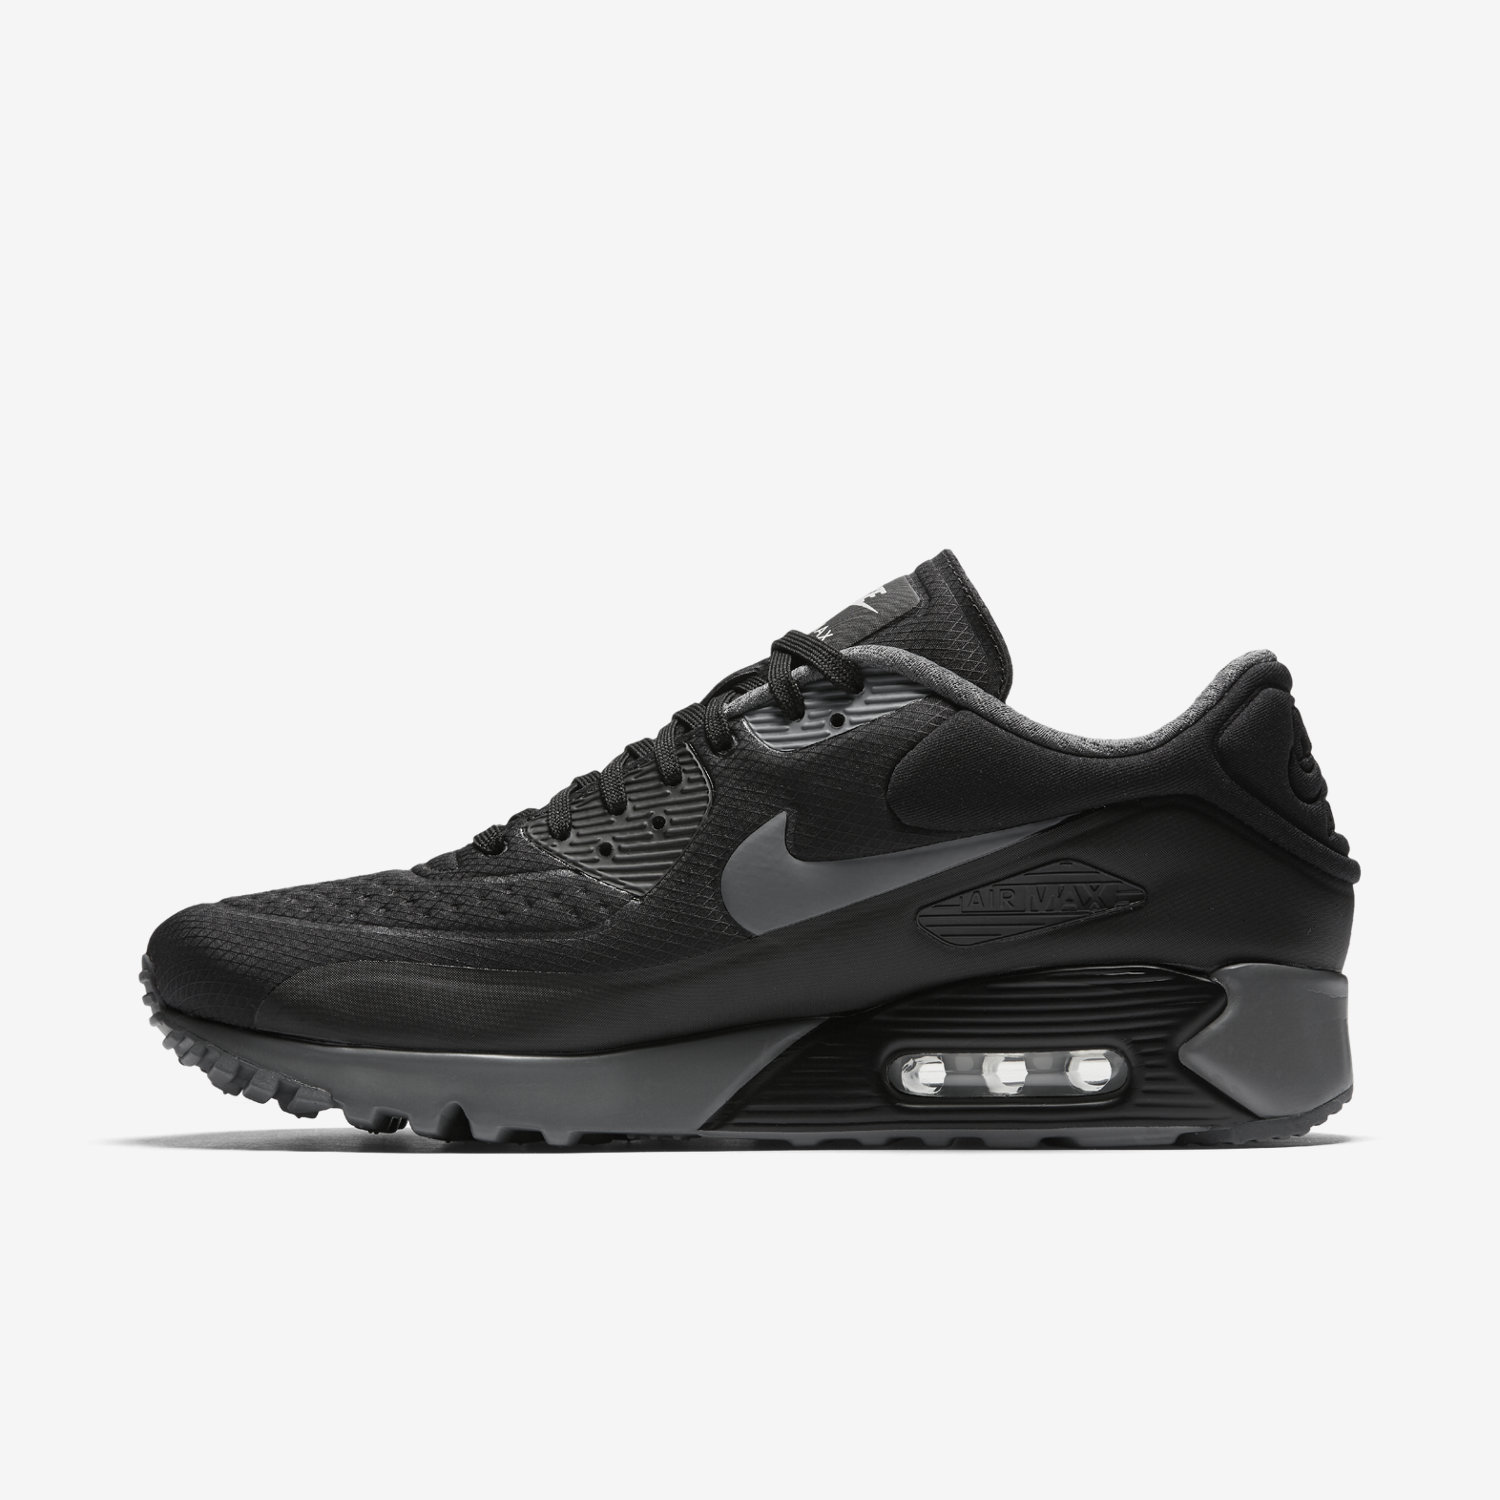 nike air max 90 ultra se. Black Bedroom Furniture Sets. Home Design Ideas